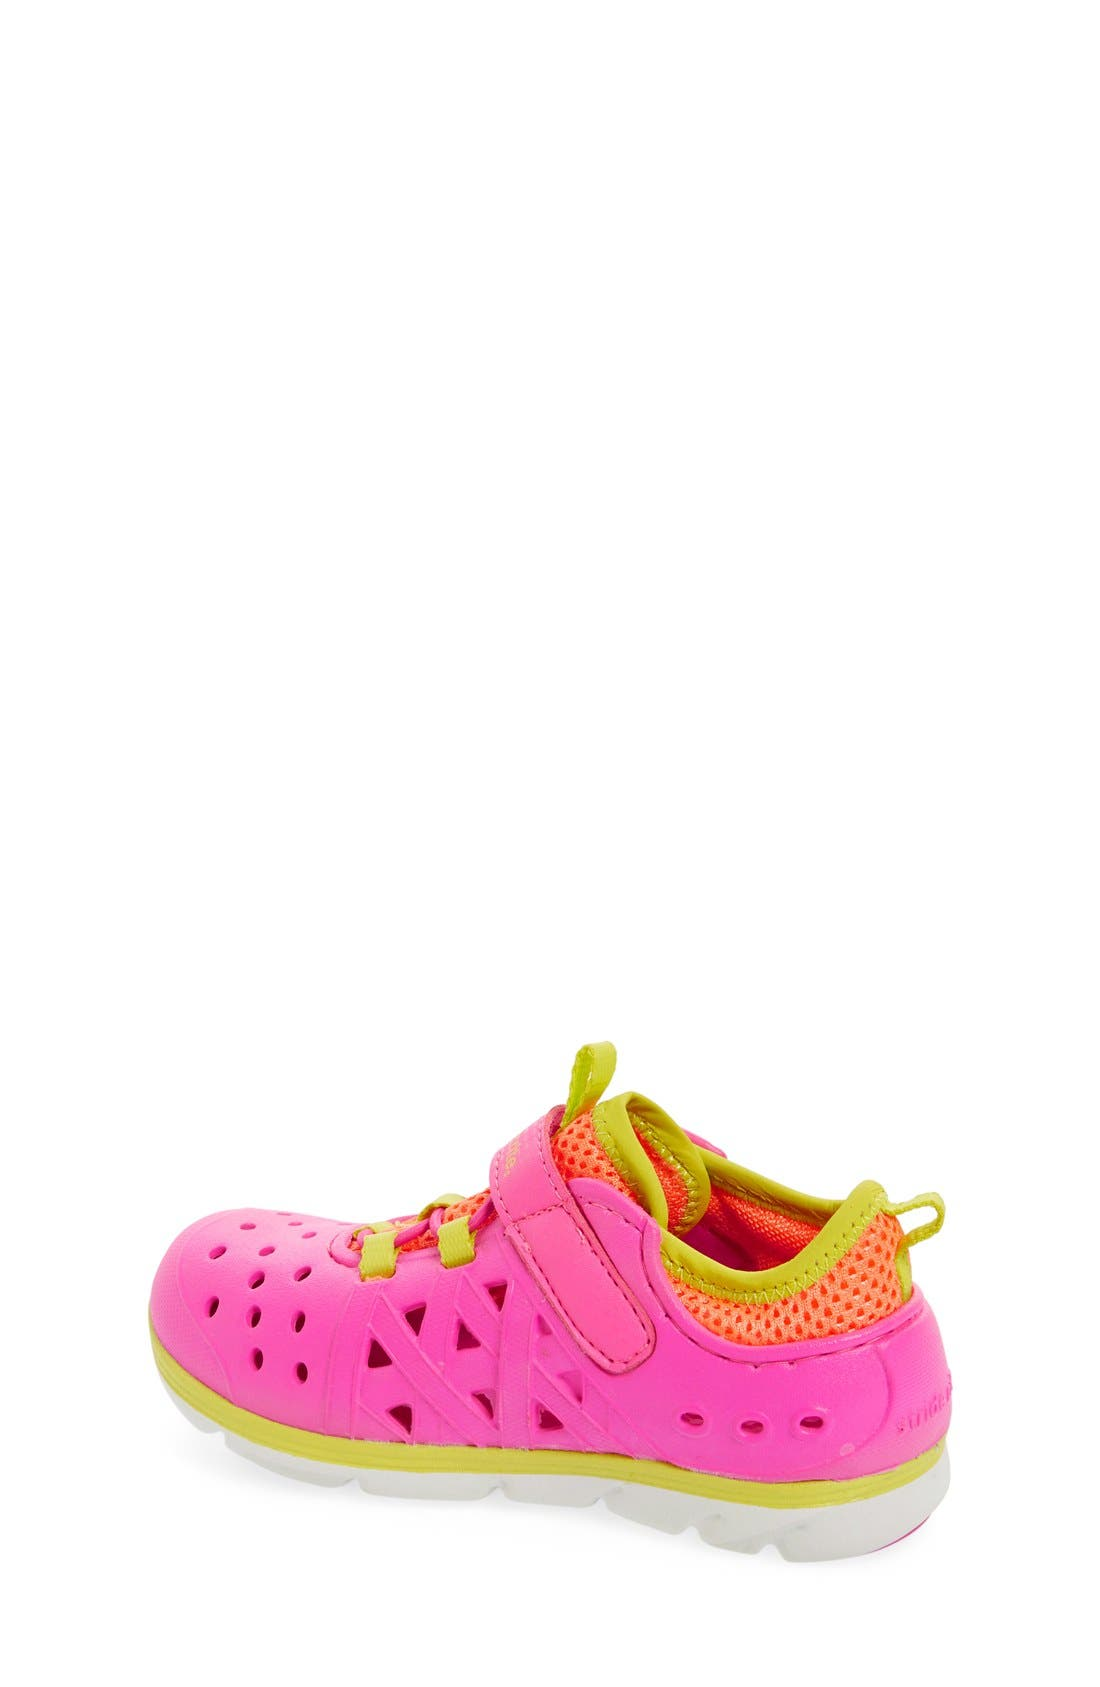 'Made2Play<sup>®</sup> - Phibian' Sneaker,                             Alternate thumbnail 2, color,                             Pink